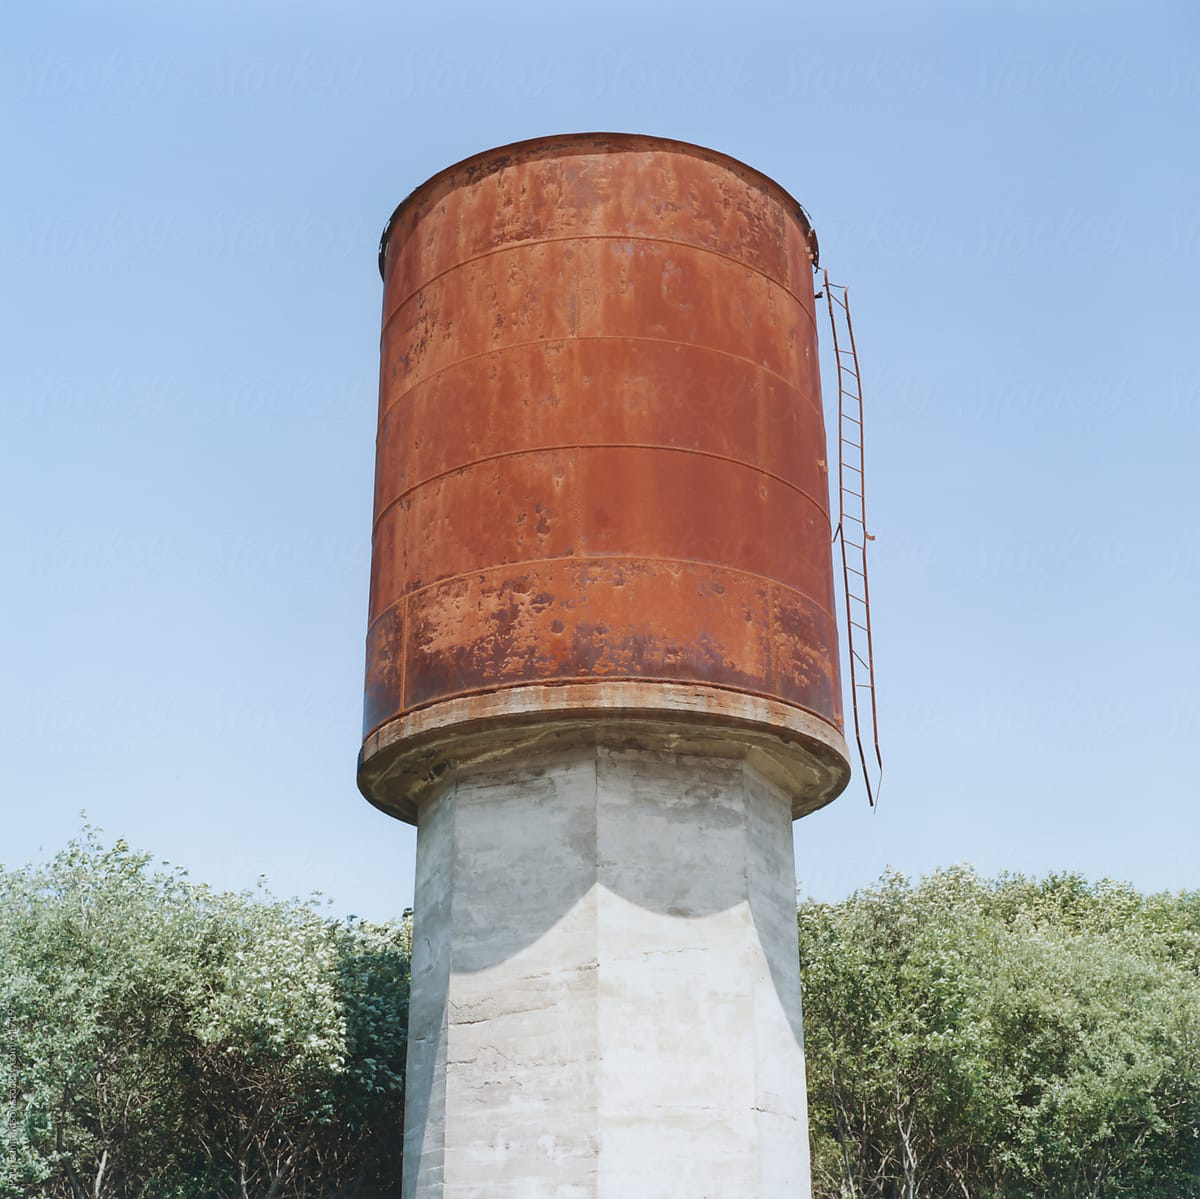 Stock Photo - Abandoned Rusty Water Tower In Field